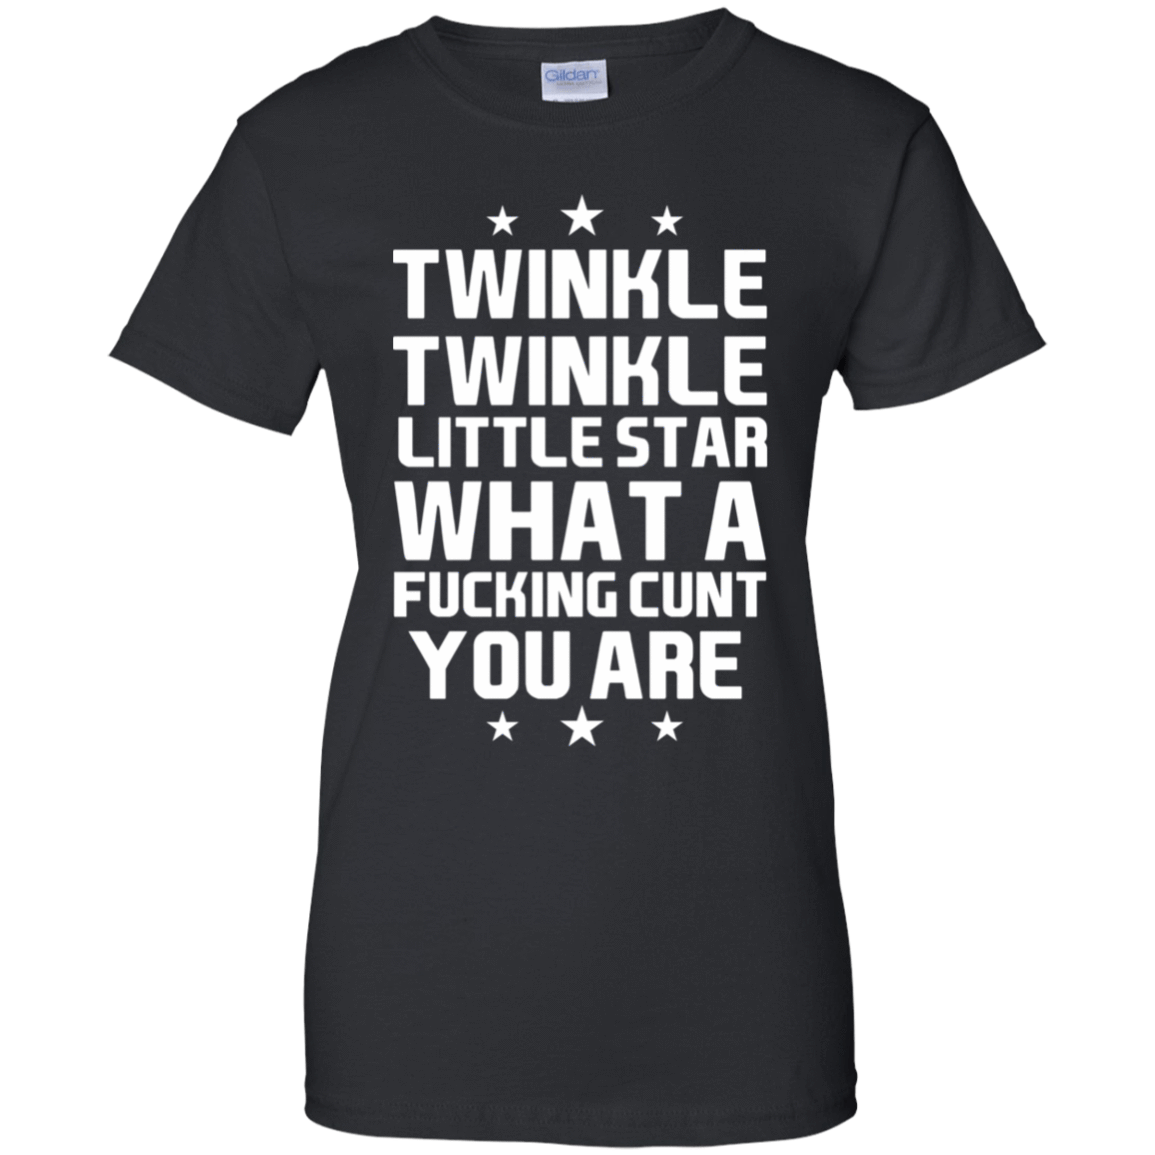 Twinkle Twinkle Little Star What A Fucking Cunt You Are T-Shirts, Hoodie, Tank 939-9248-77772957-44695 - Tee Ript